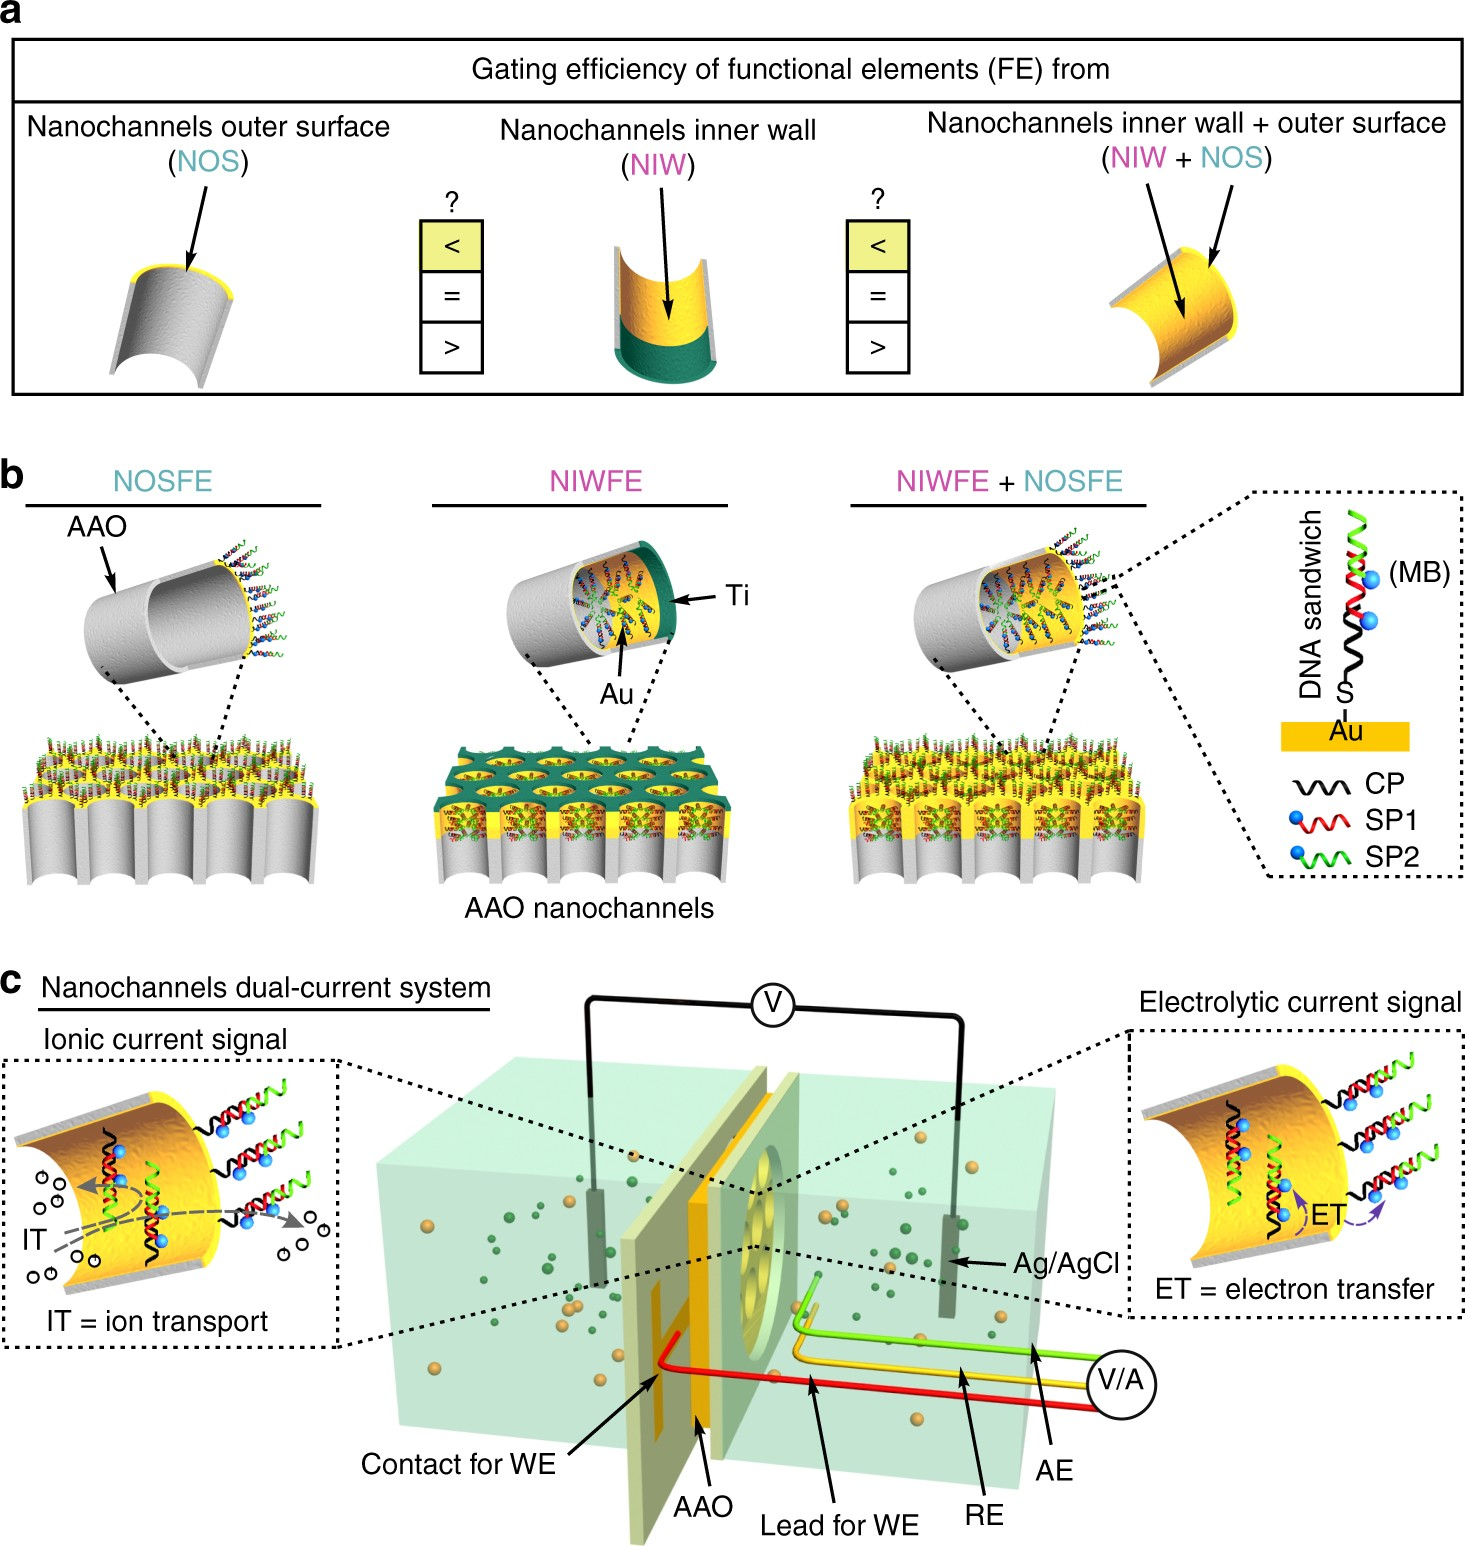 Role Of Outer Surface Probes For Regulating Ion Gating How To Build Picoammeter Circuit With 4 Ranges Nanochannels Nature Communications